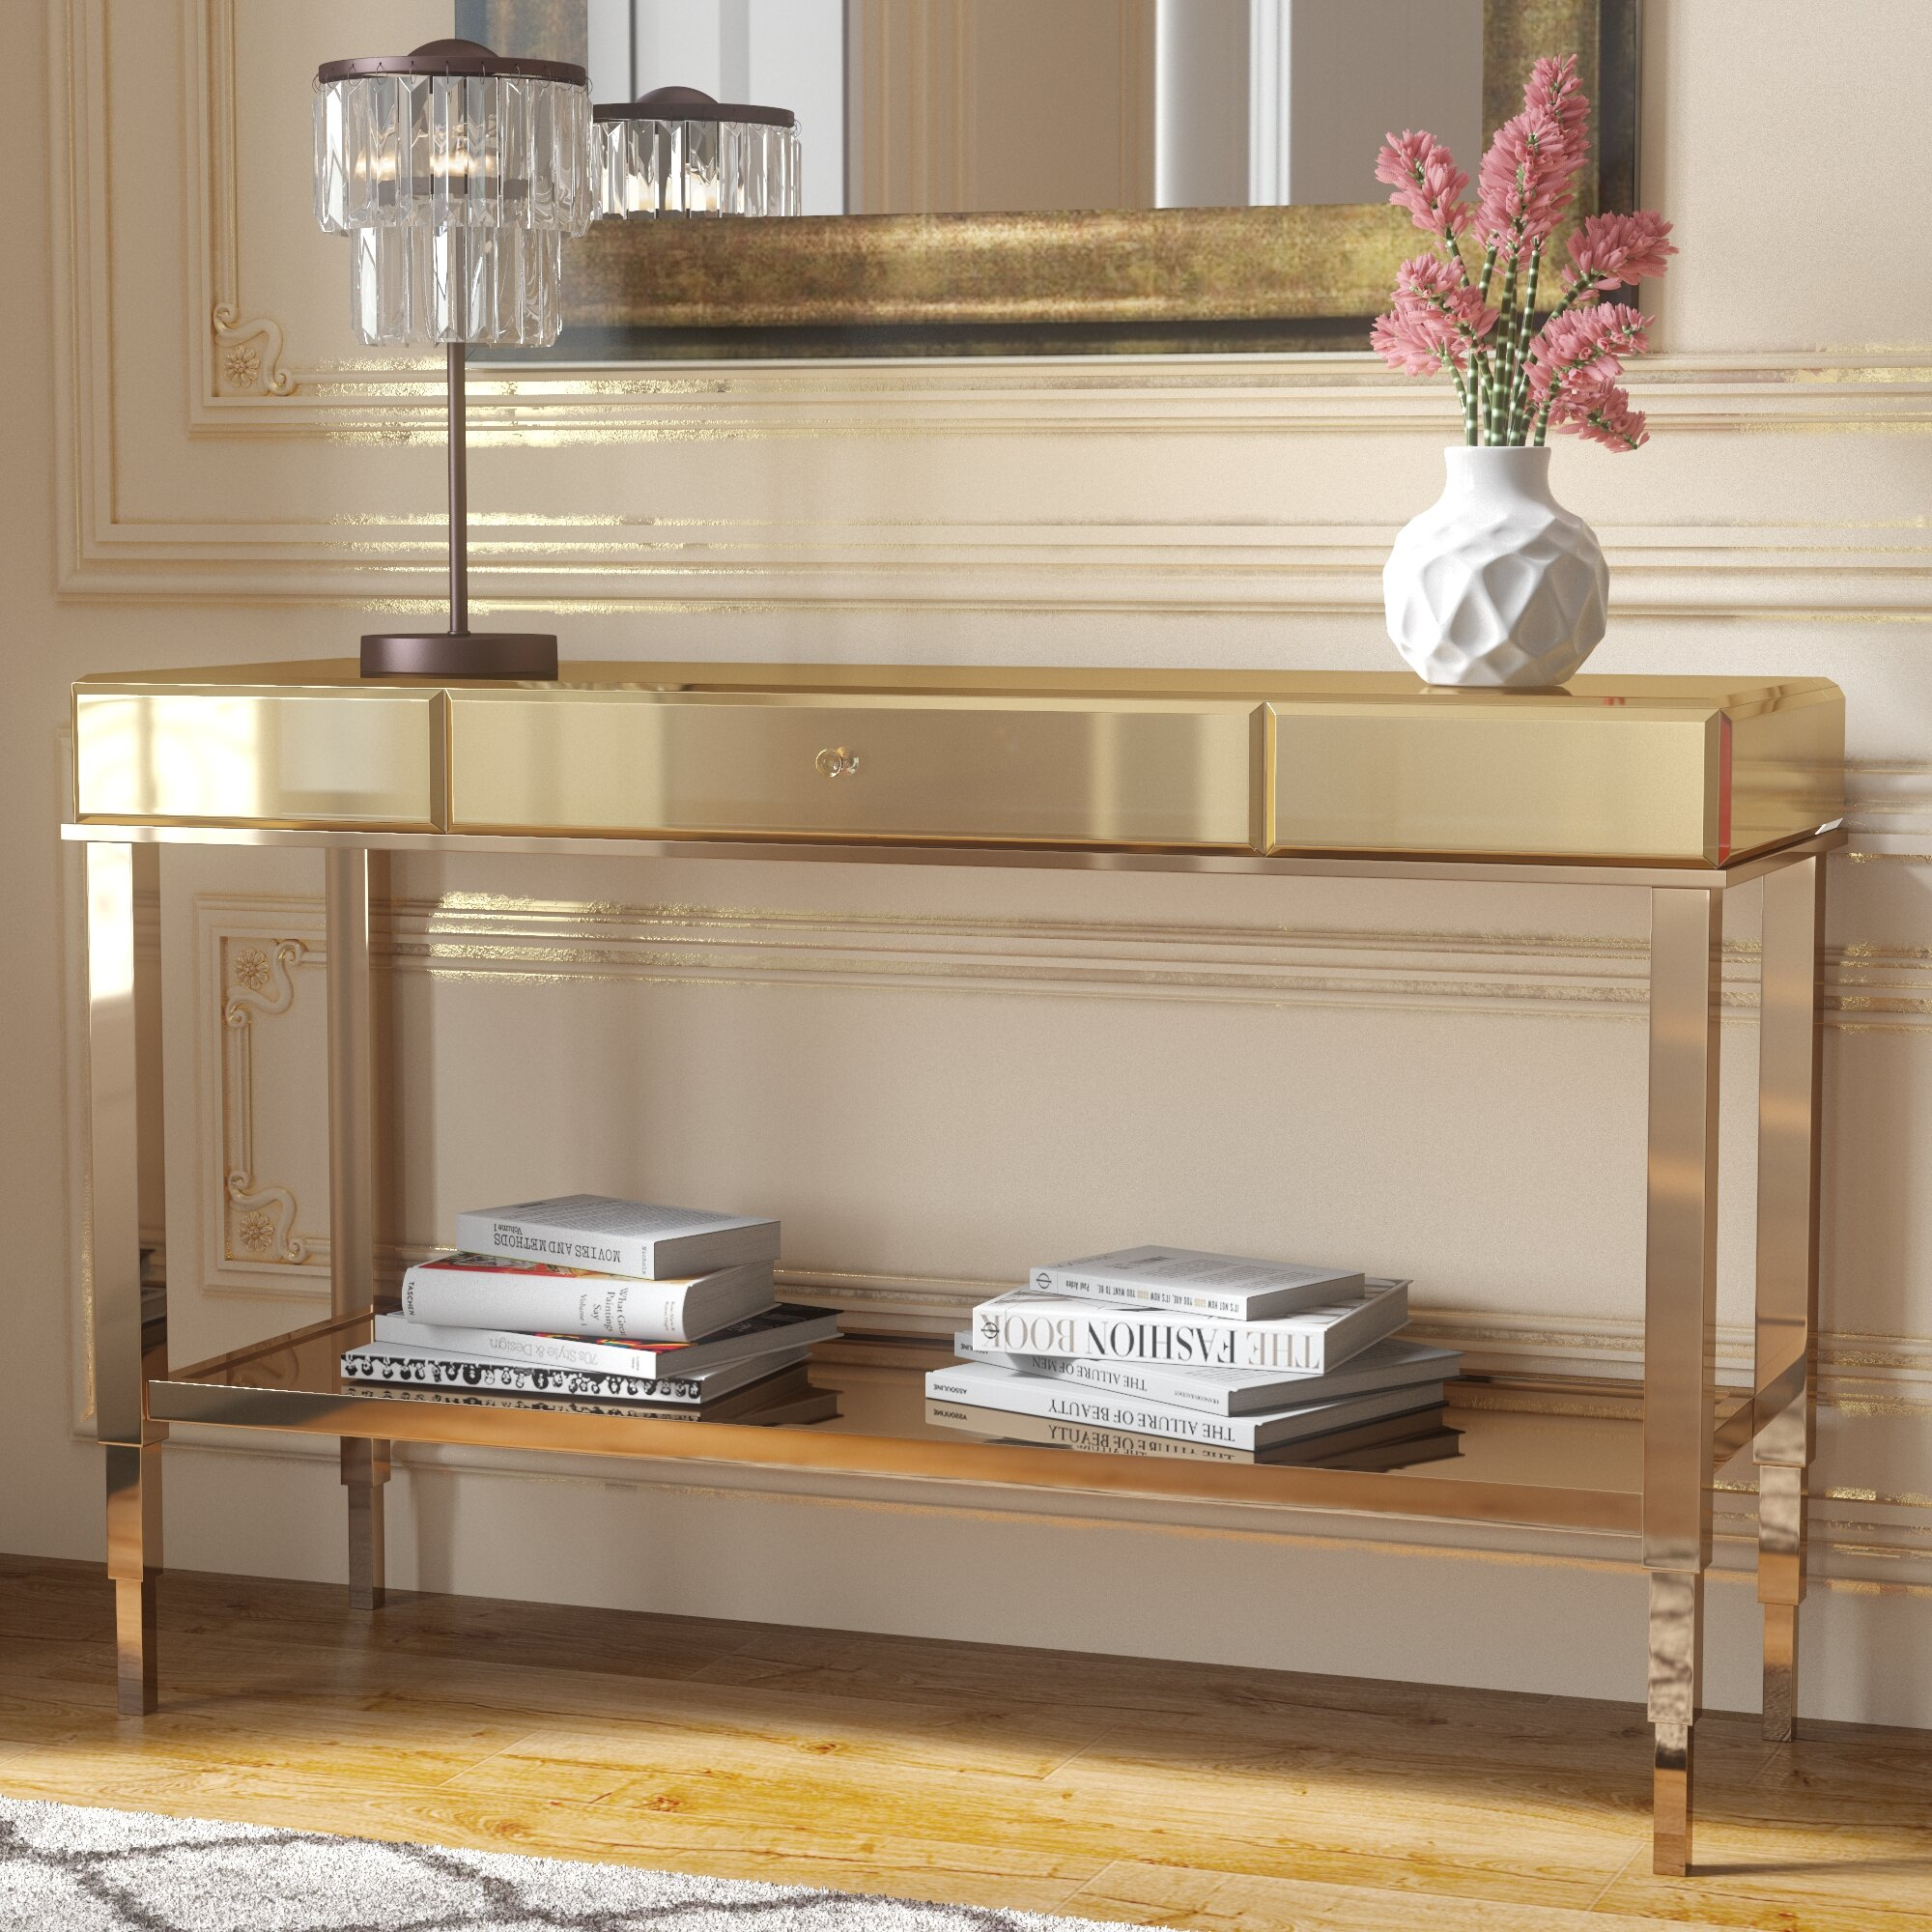 Merveilleux Willa Arlo Interiors Calisto Mirrored Console Table U0026 Reviews | Wayfair